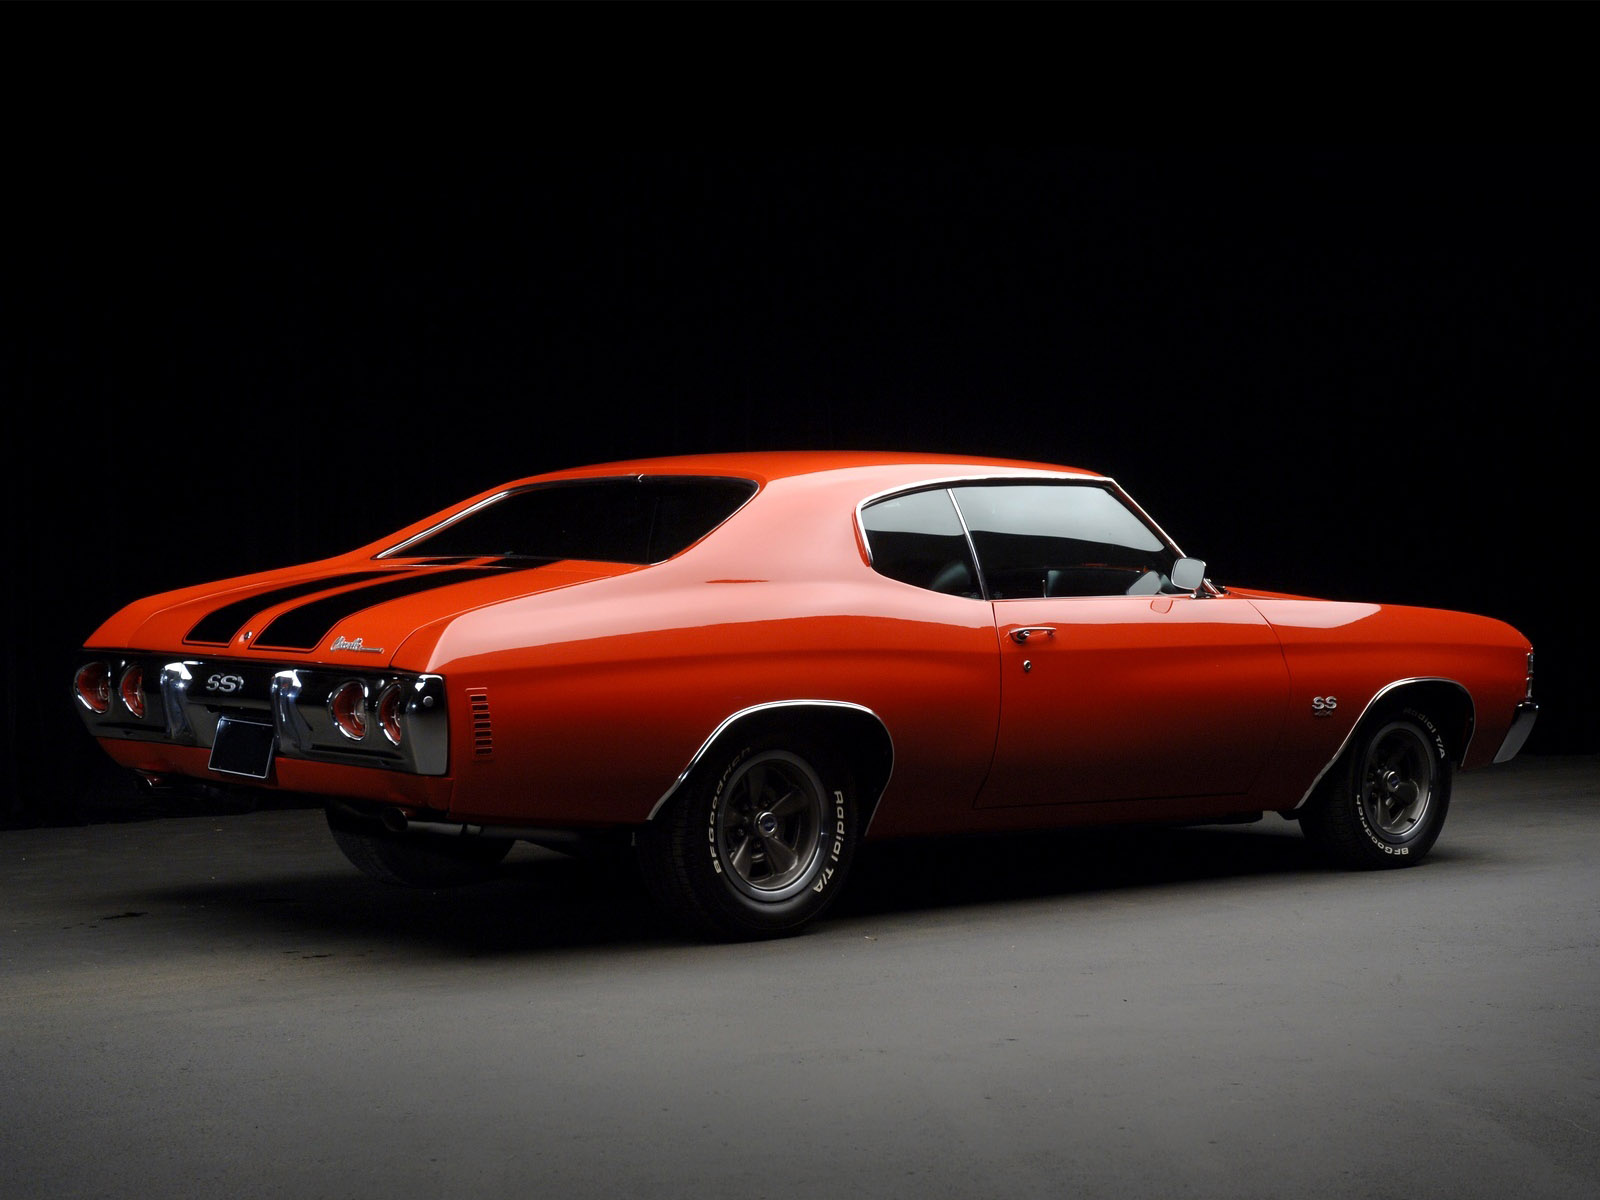 1971 Chevrolet Chevelle S S classic muscle f wallpaper background 1600x1200